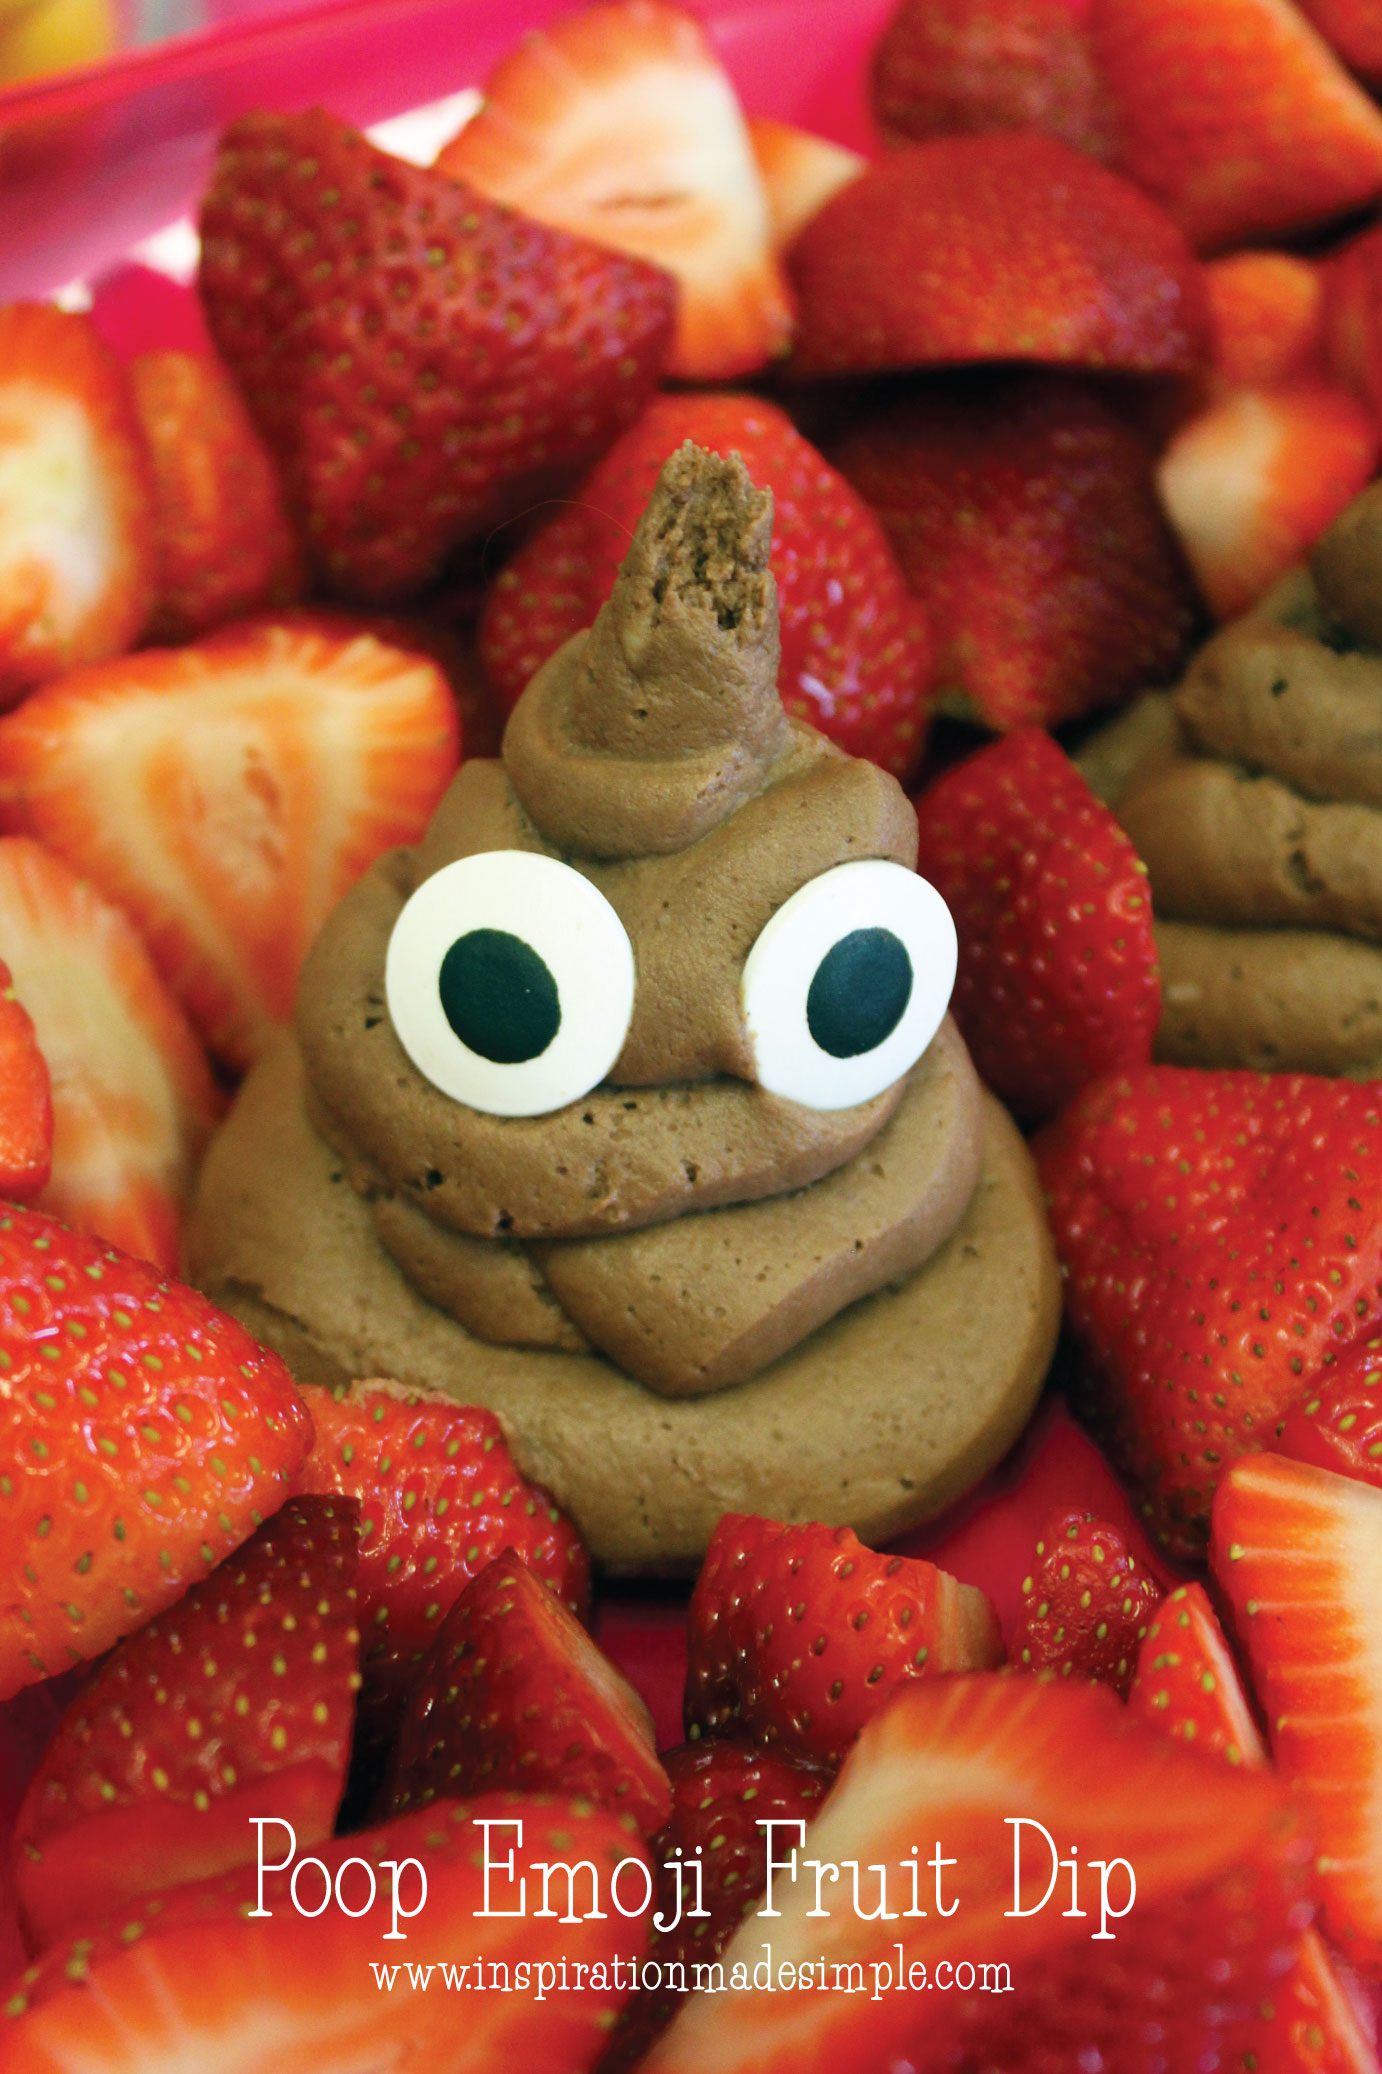 Poop Emoji Fruit Dip for a Emoji Paint and Sip Party for Kids